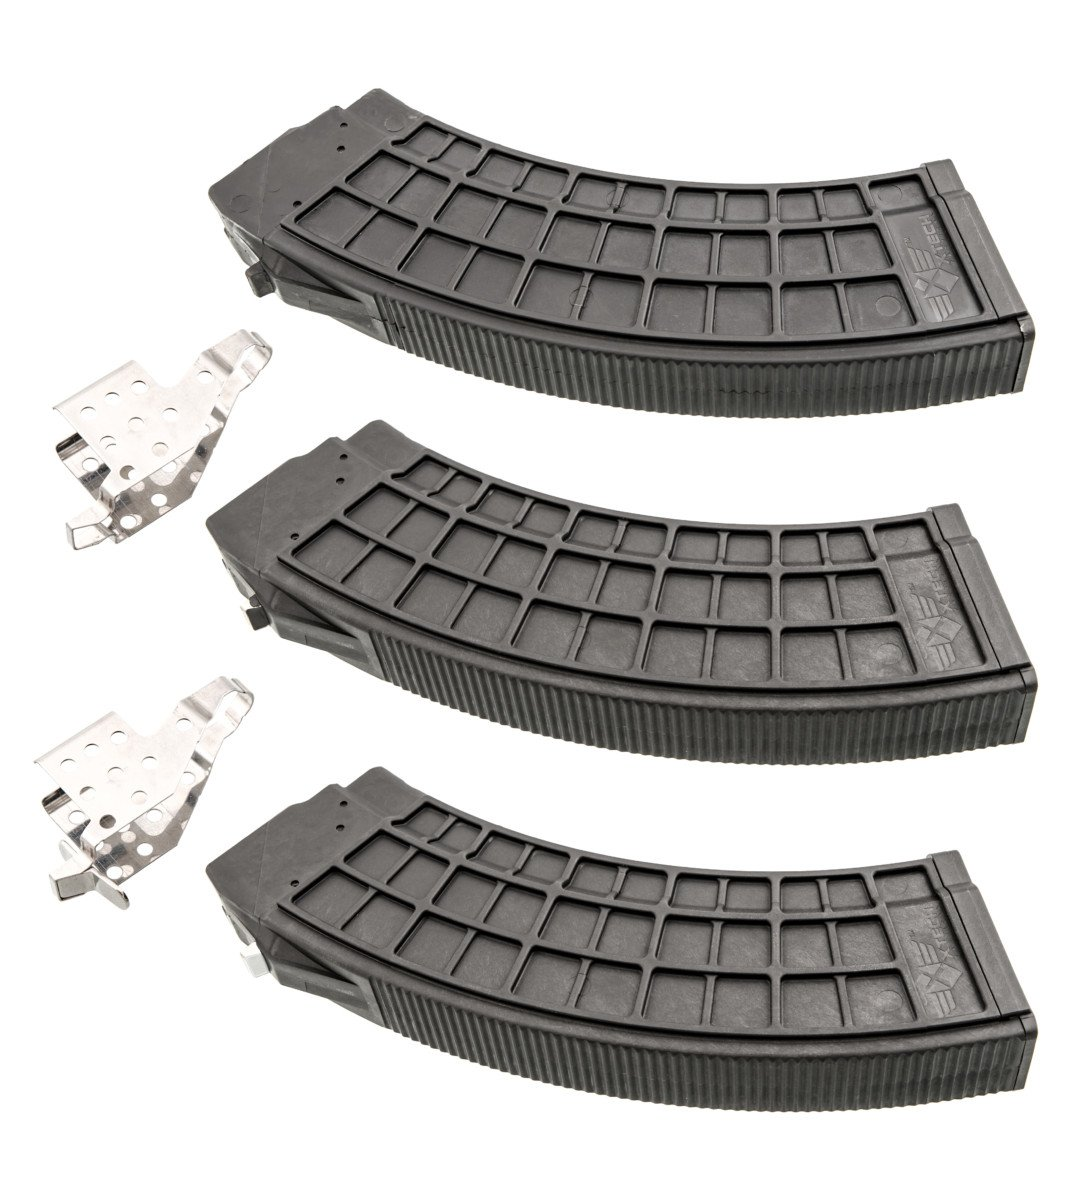 All three tiers of 47 mags